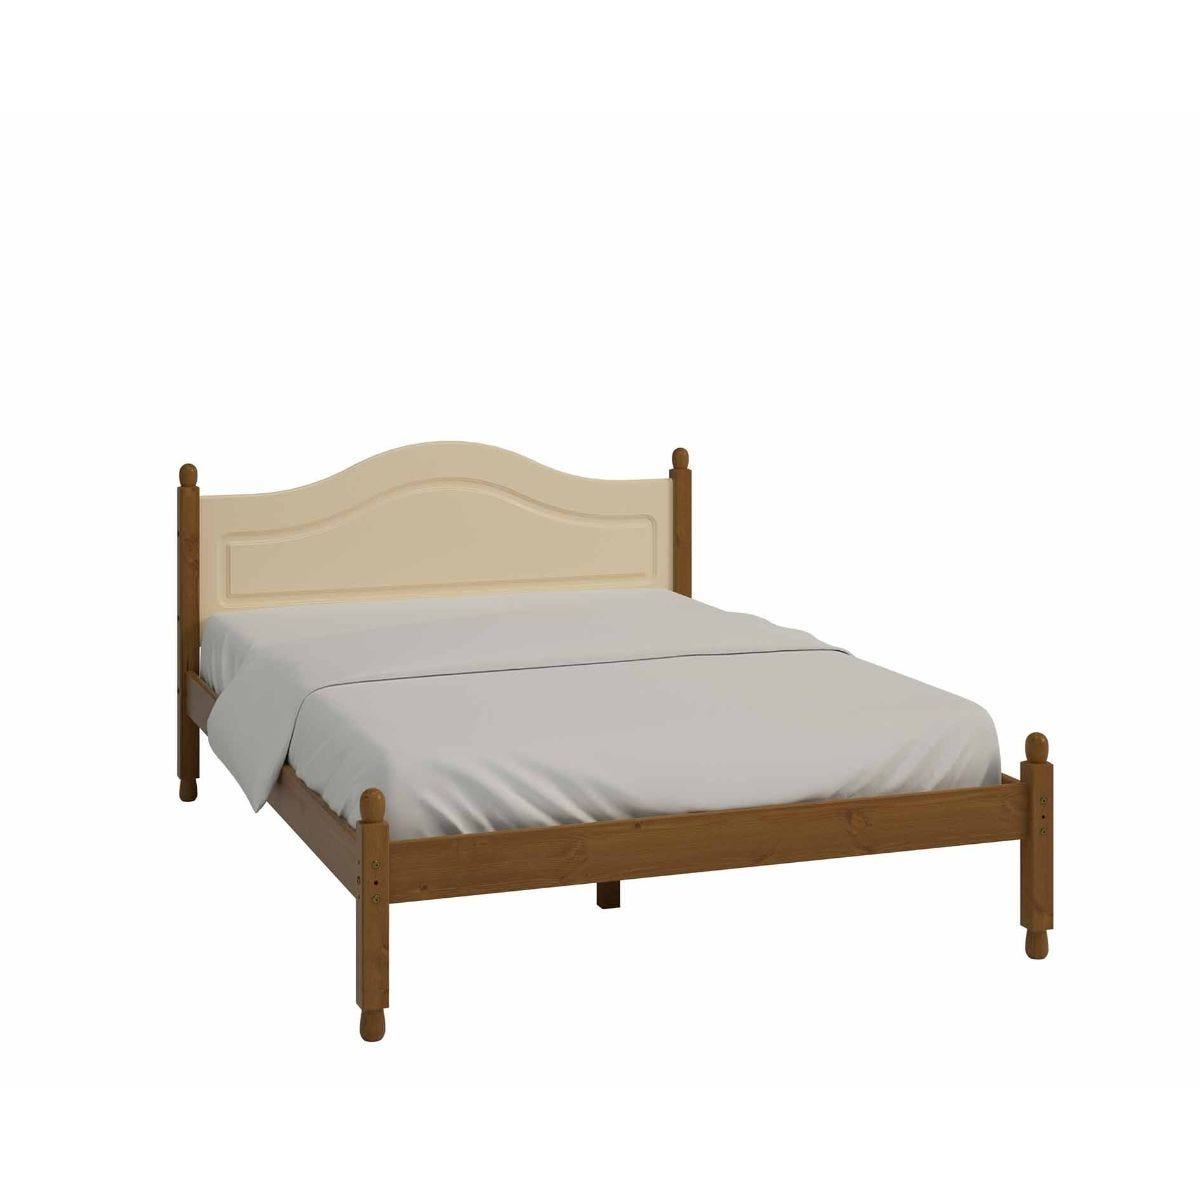 Steens Richmond Double Bed Frame 4ft 6, Cream